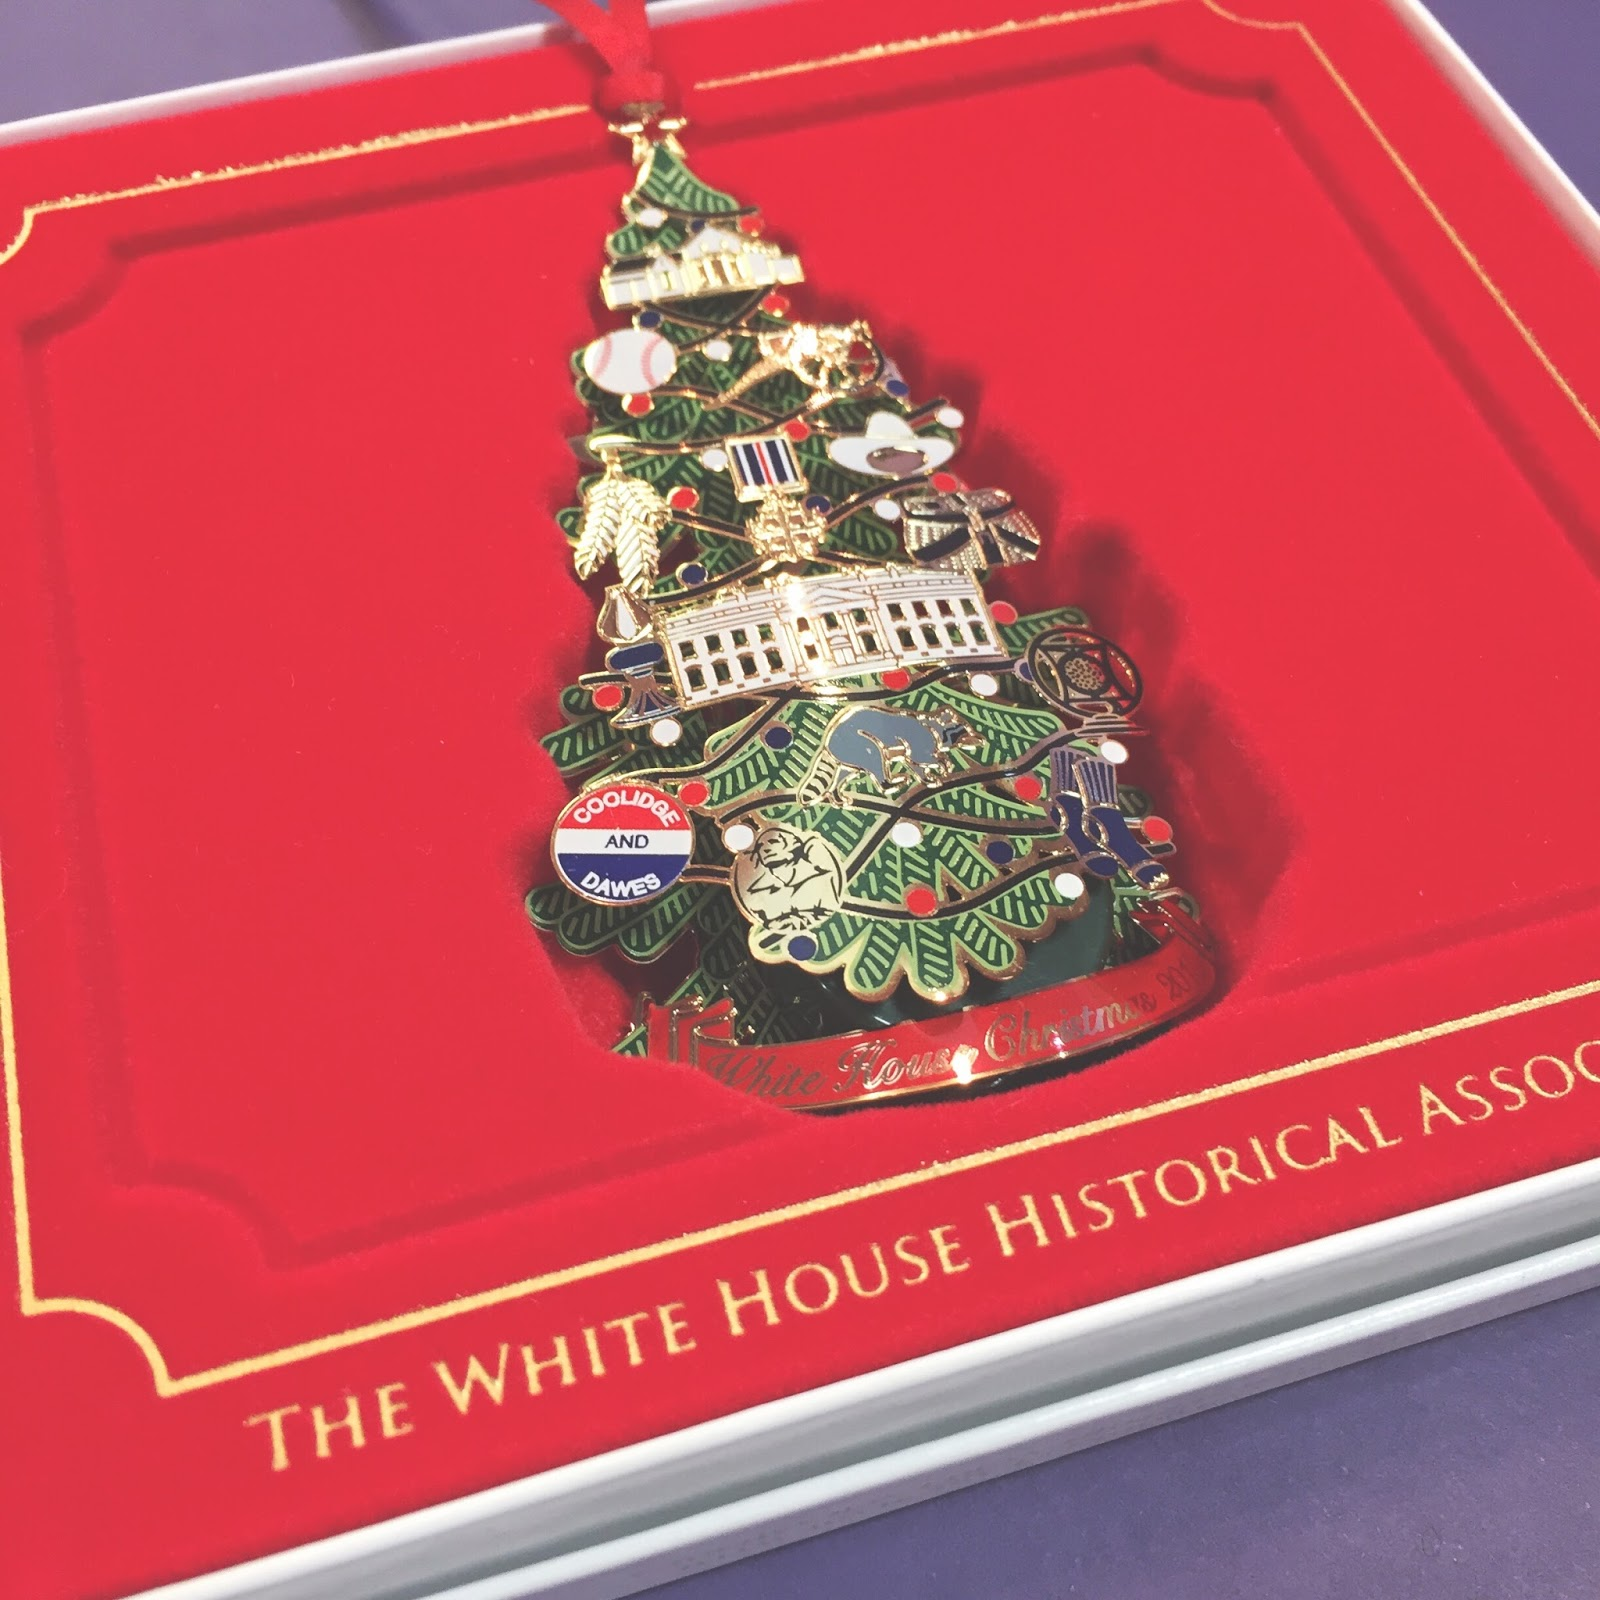 White house christmas ornaments by year - The 2015 White House Ornaments Are Here This Year The Ornament Honors The Administration Of President Calvin Coolidge For The First Time